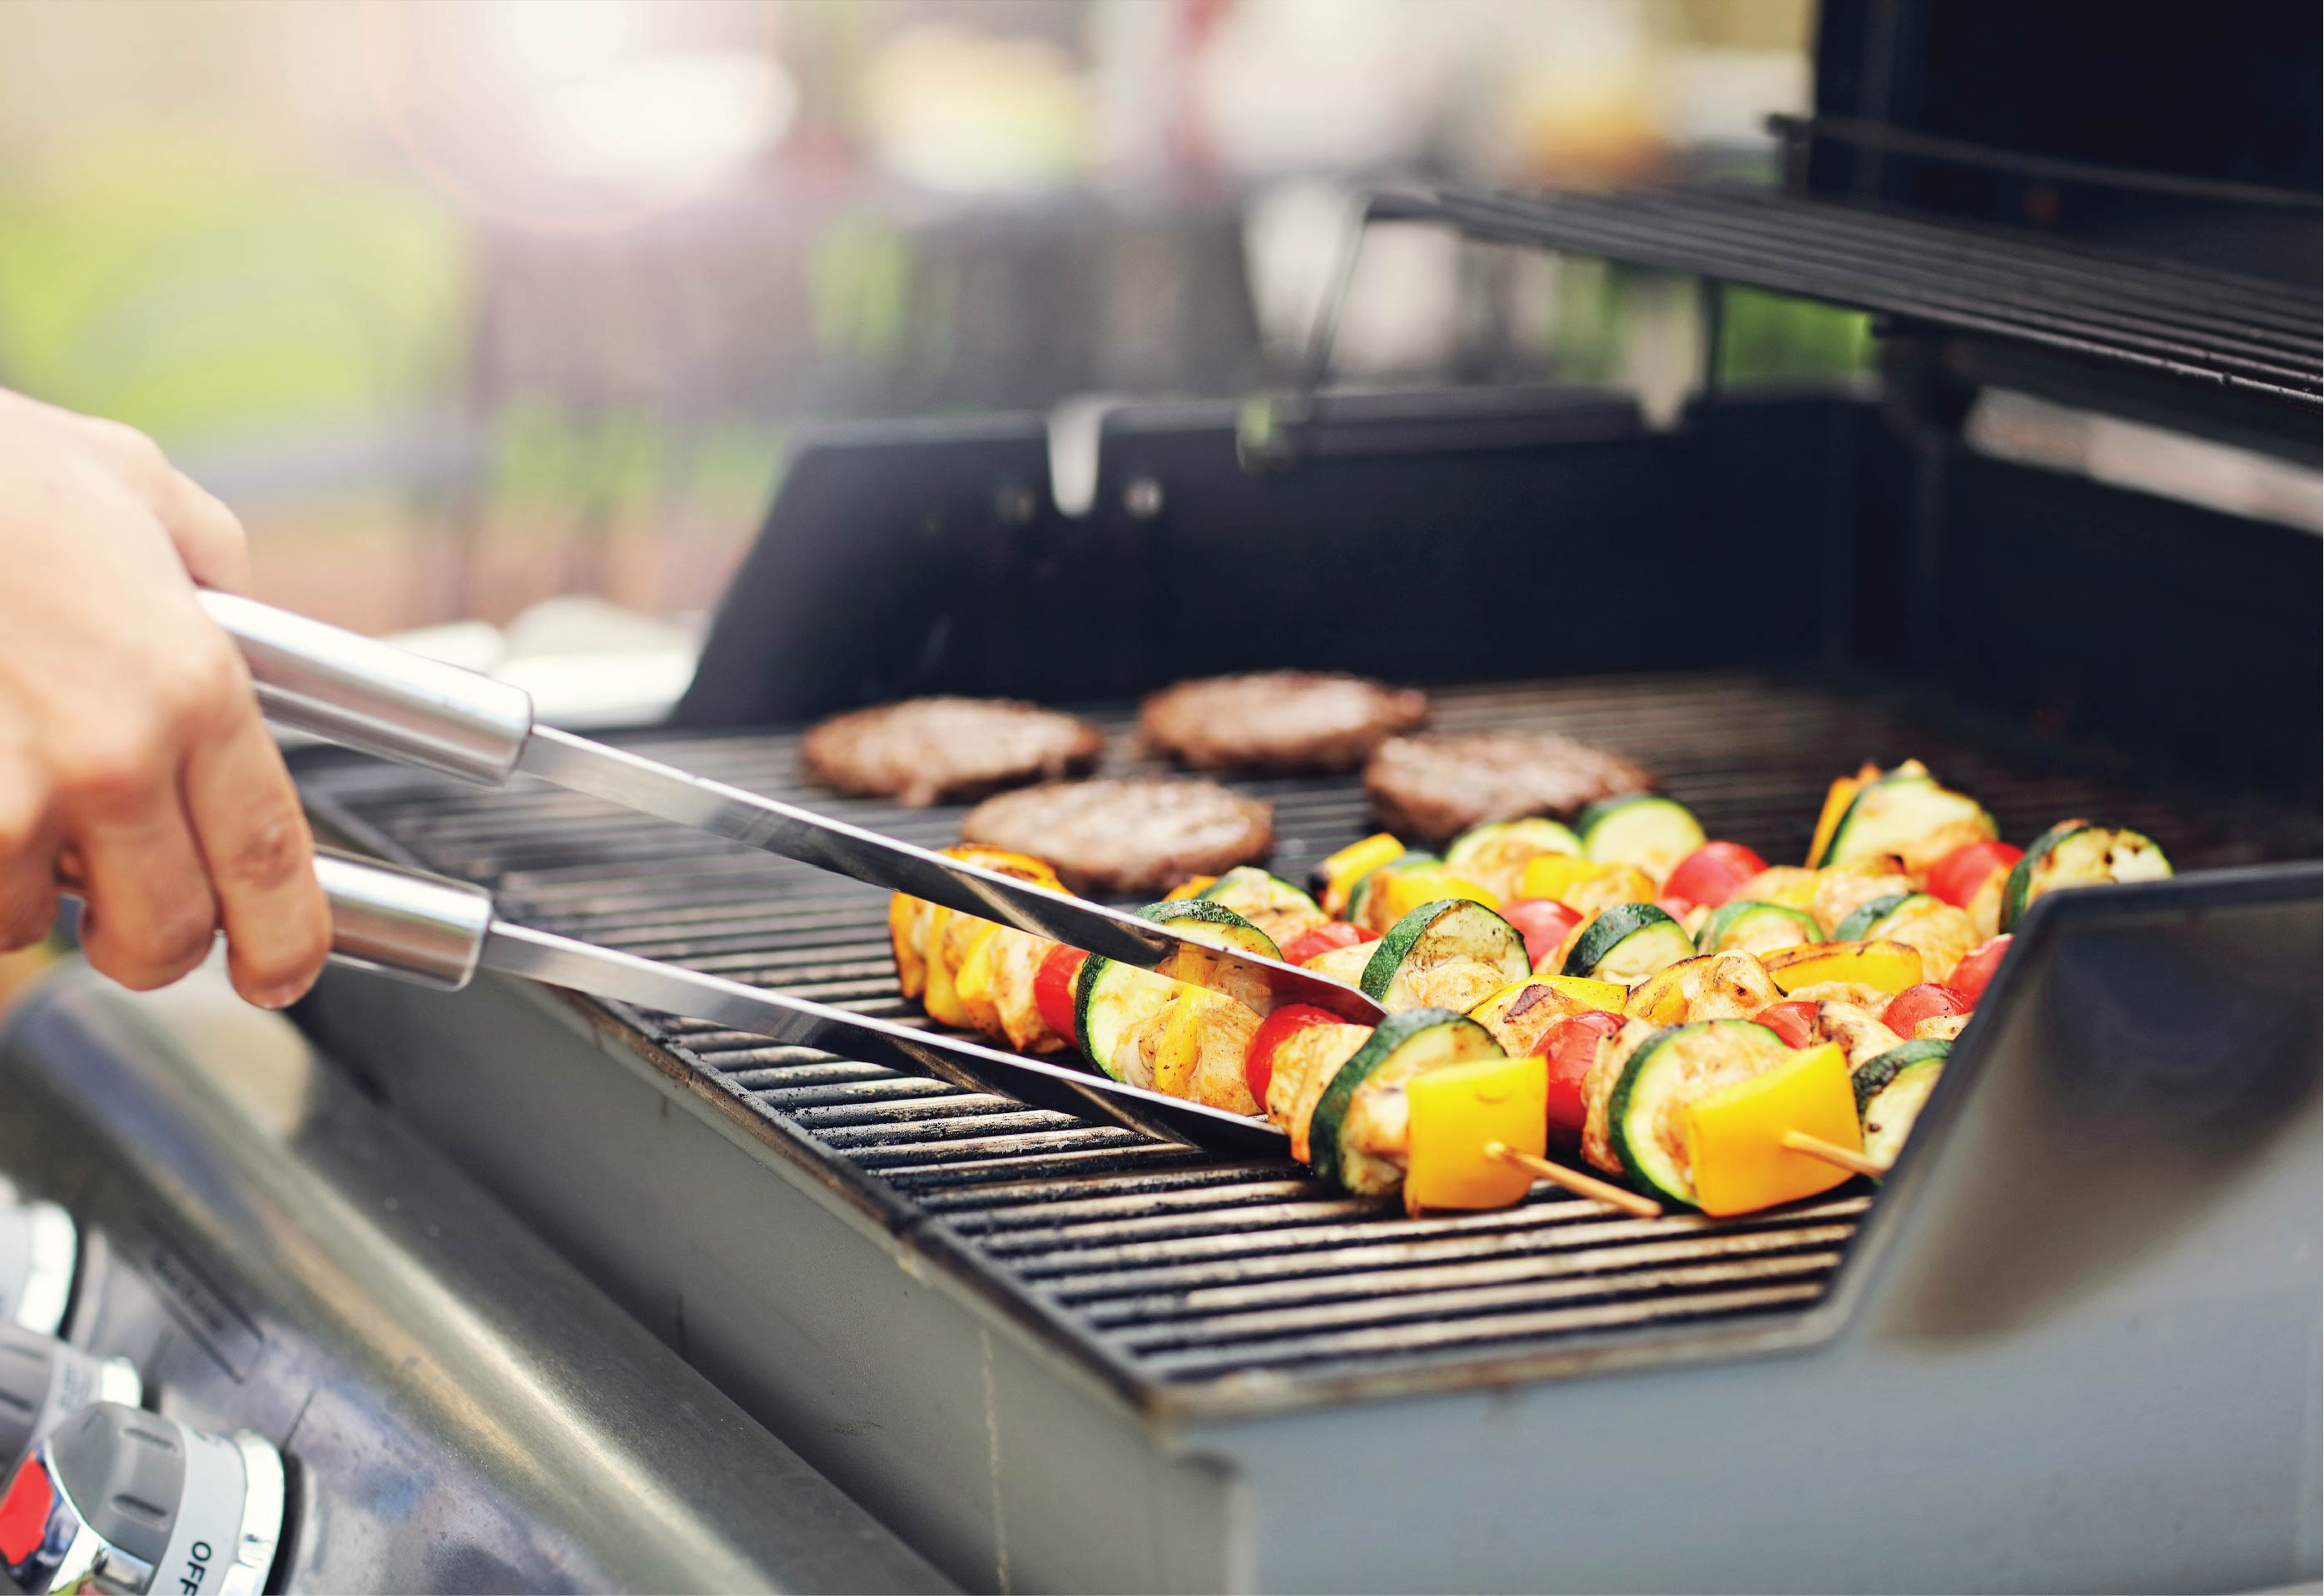 Delicious vegetable kebabs with meat patties sizzling on a barbeque grill.